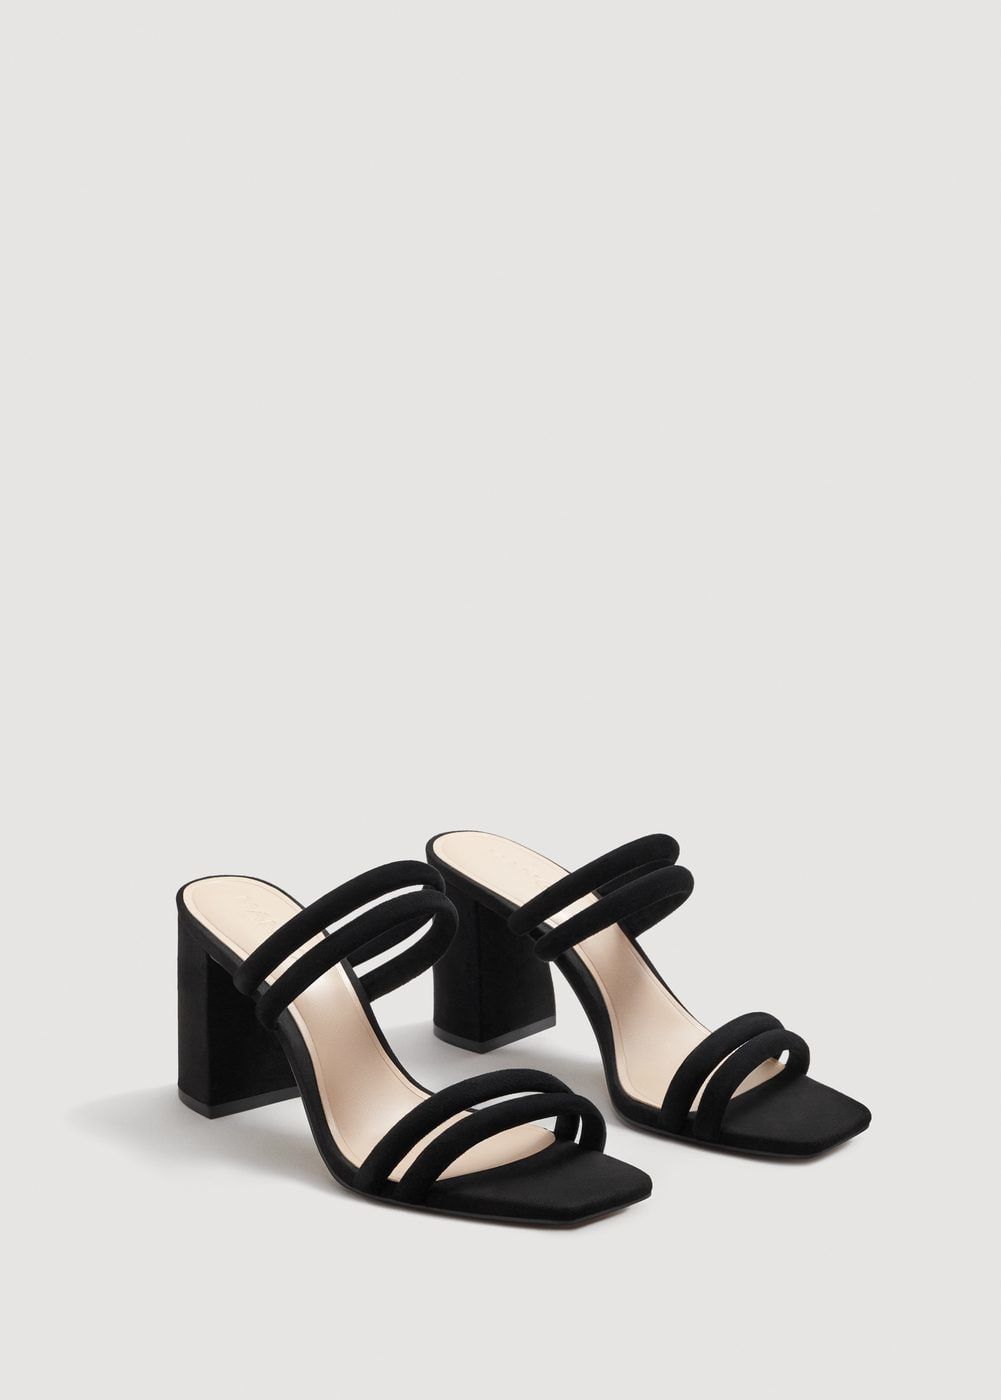 8b9233332088 Leather straps sandals - Woman in 2019 | Affordable Chic | Strap ...